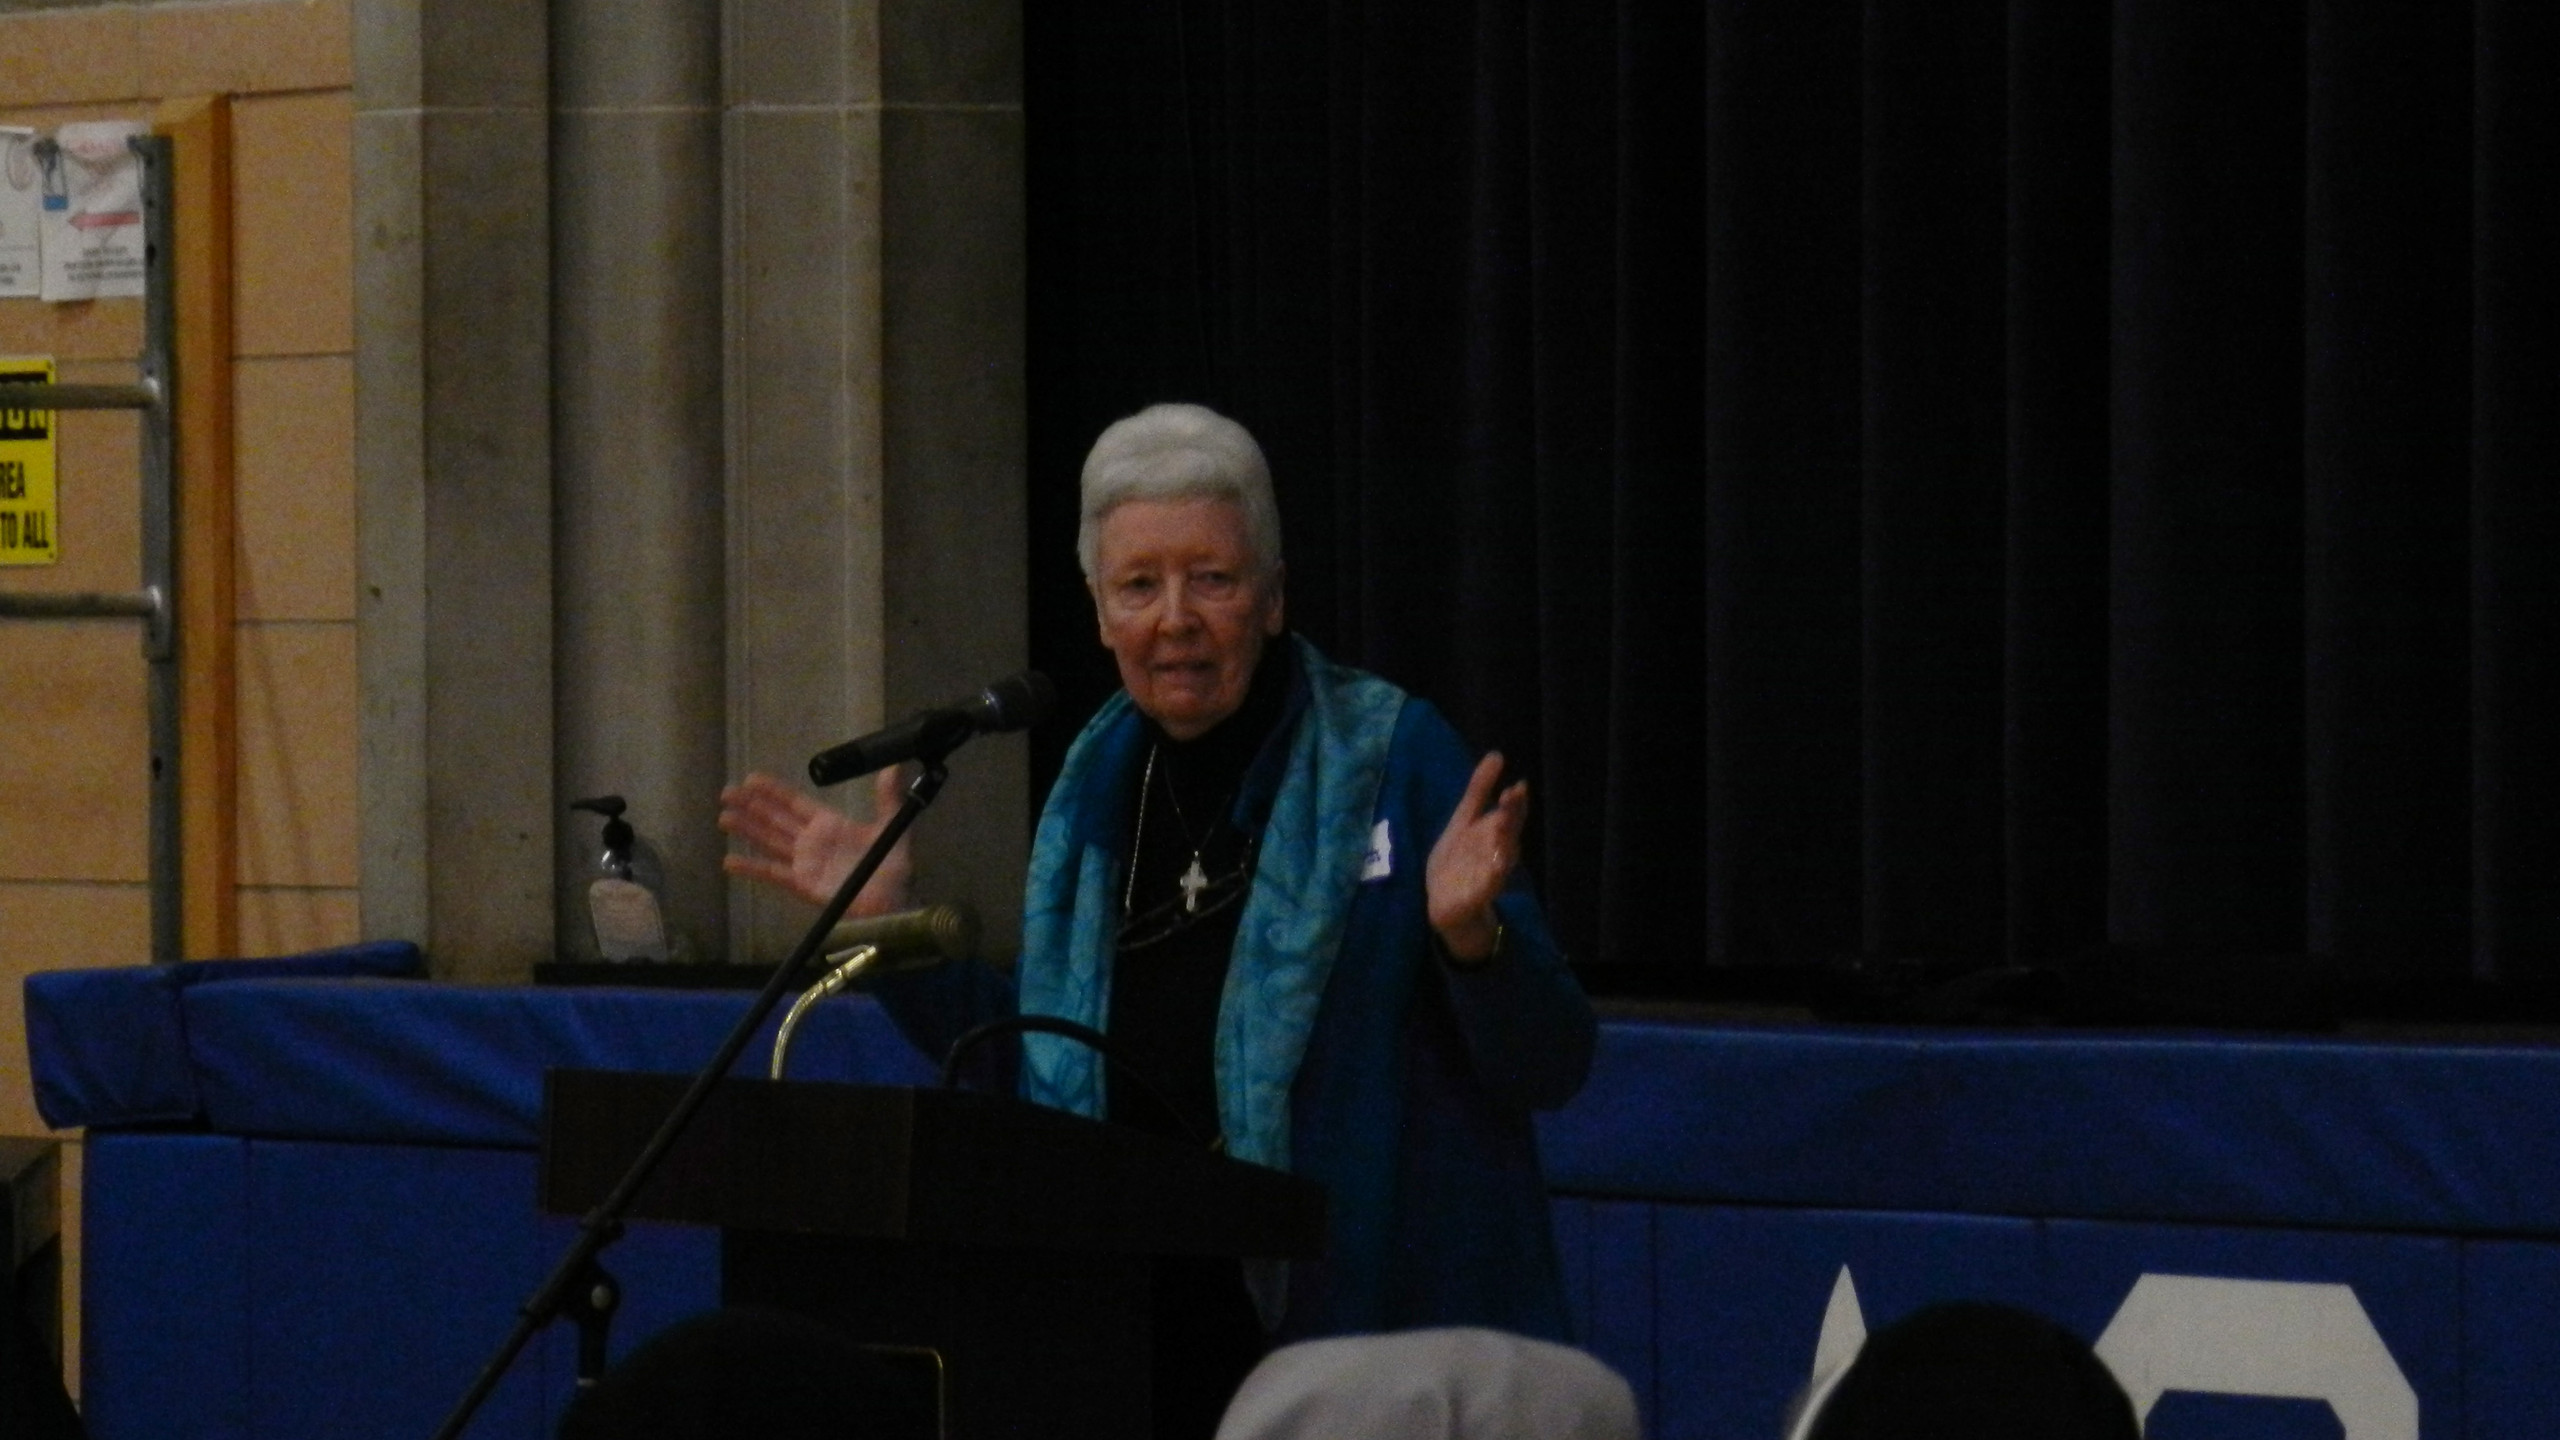 Sister Patricia Crowley, OSB addressing the group